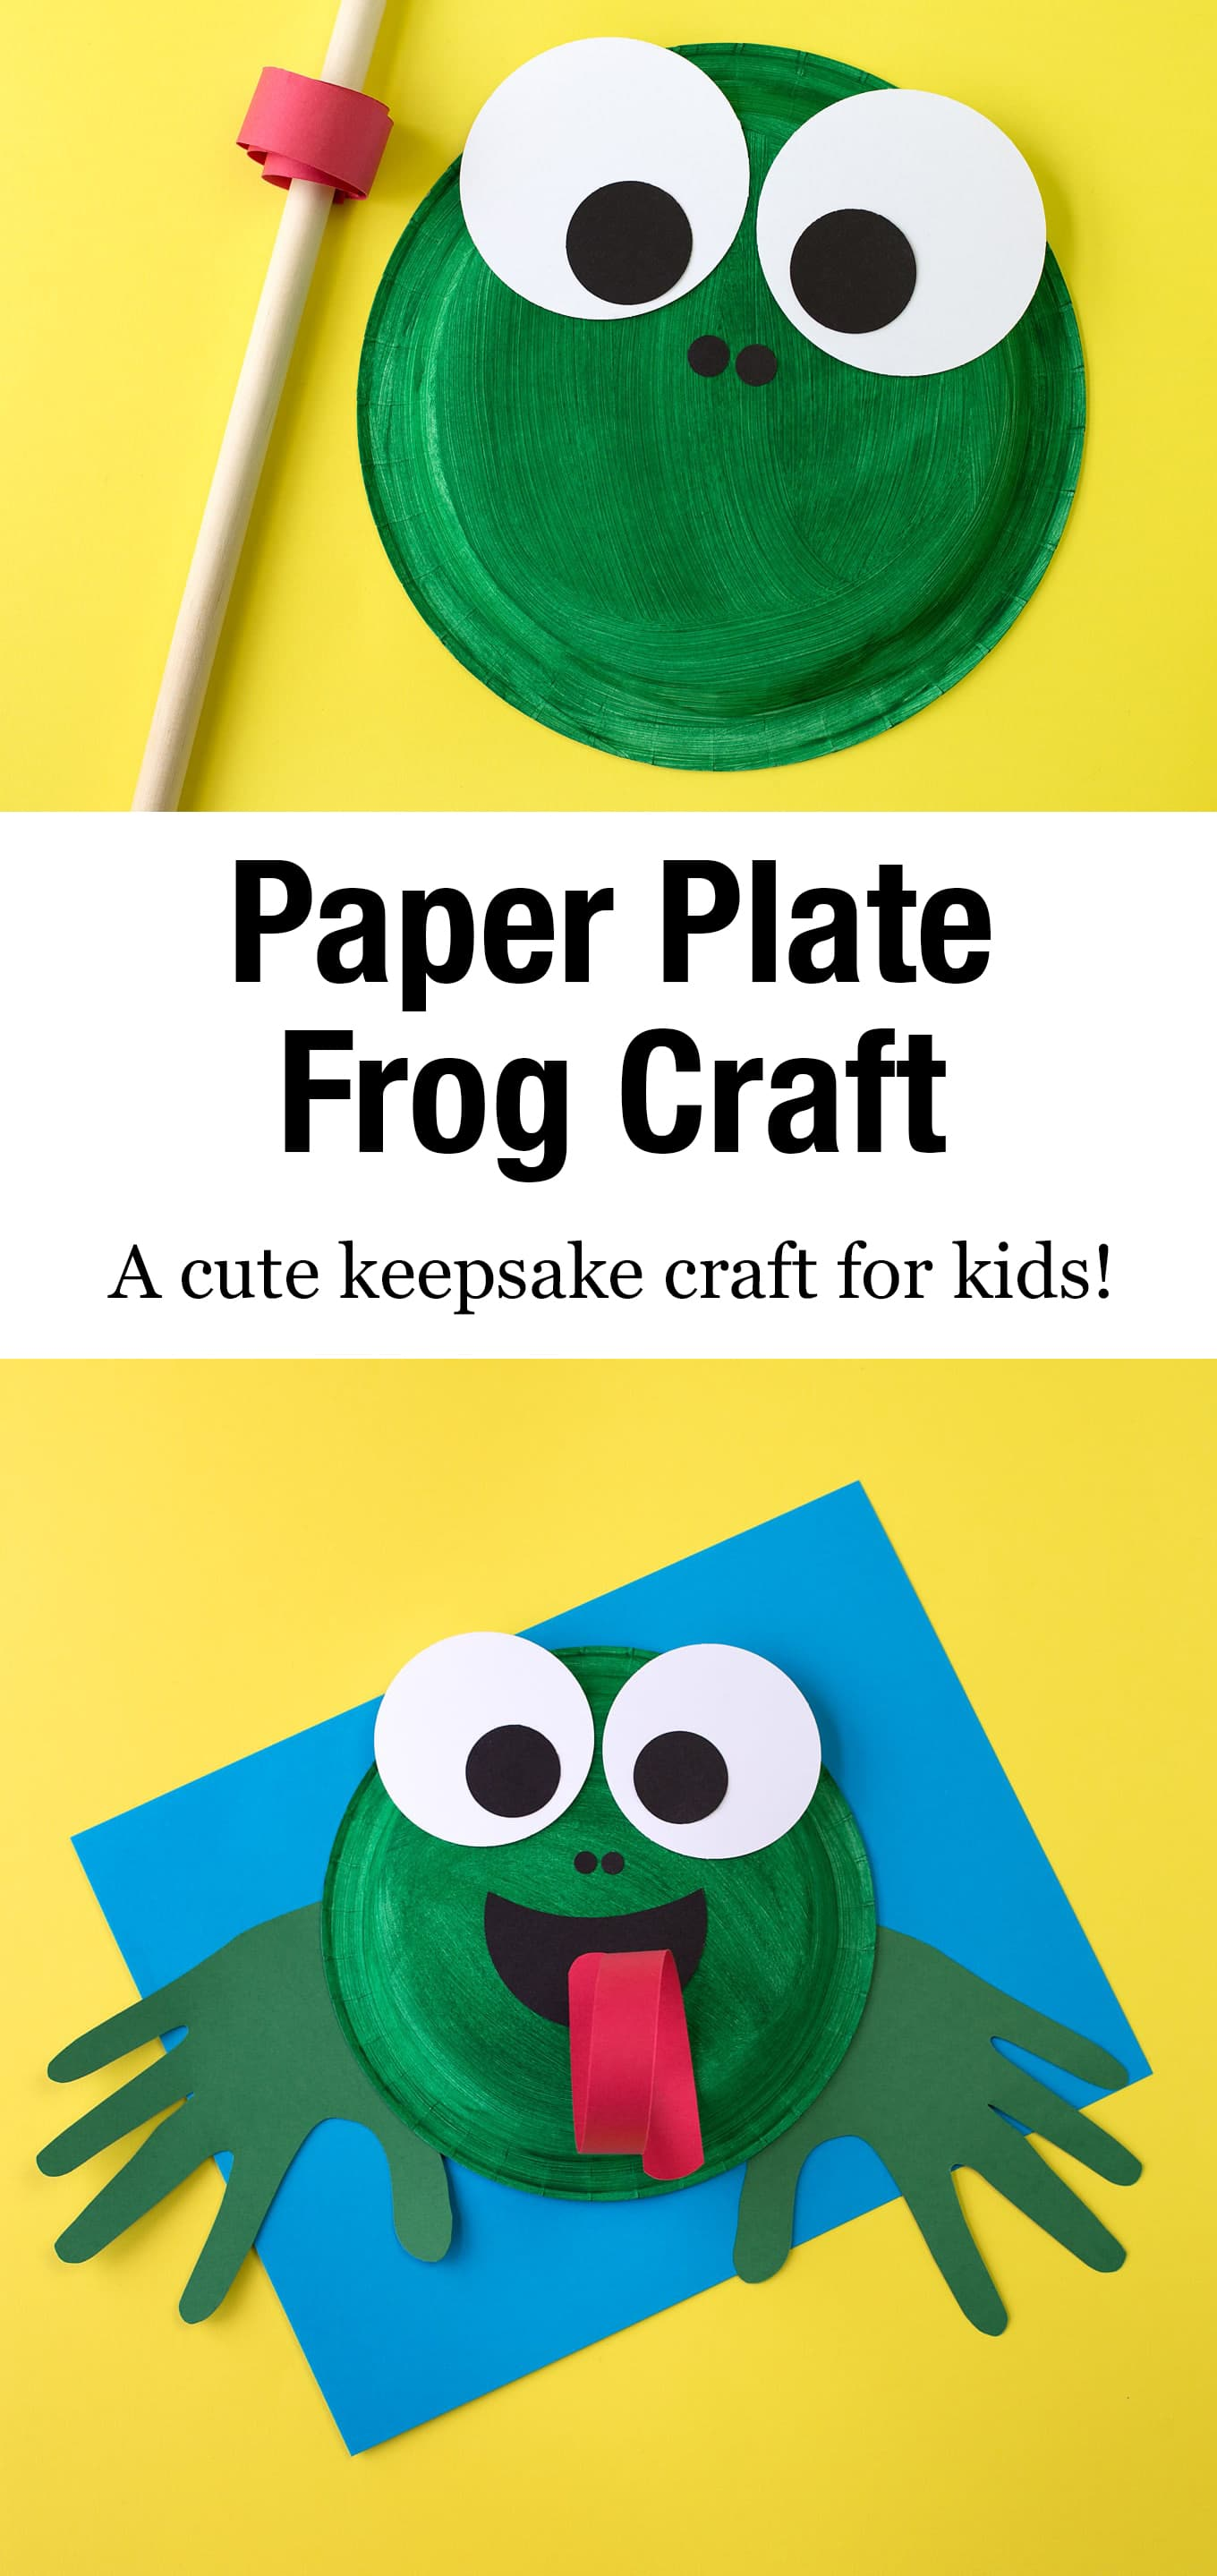 Learn how to make an adorable and fun Paper Plate Frog Craft for summer. This easy frog craft is perfect for helping kids, especially preschoolers, learn all about the life cycle of frogs and toads. #paperplatefrog #preschool #frogcraft #forkids #frogcraftsprescool #easy via @firefliesandmudpies